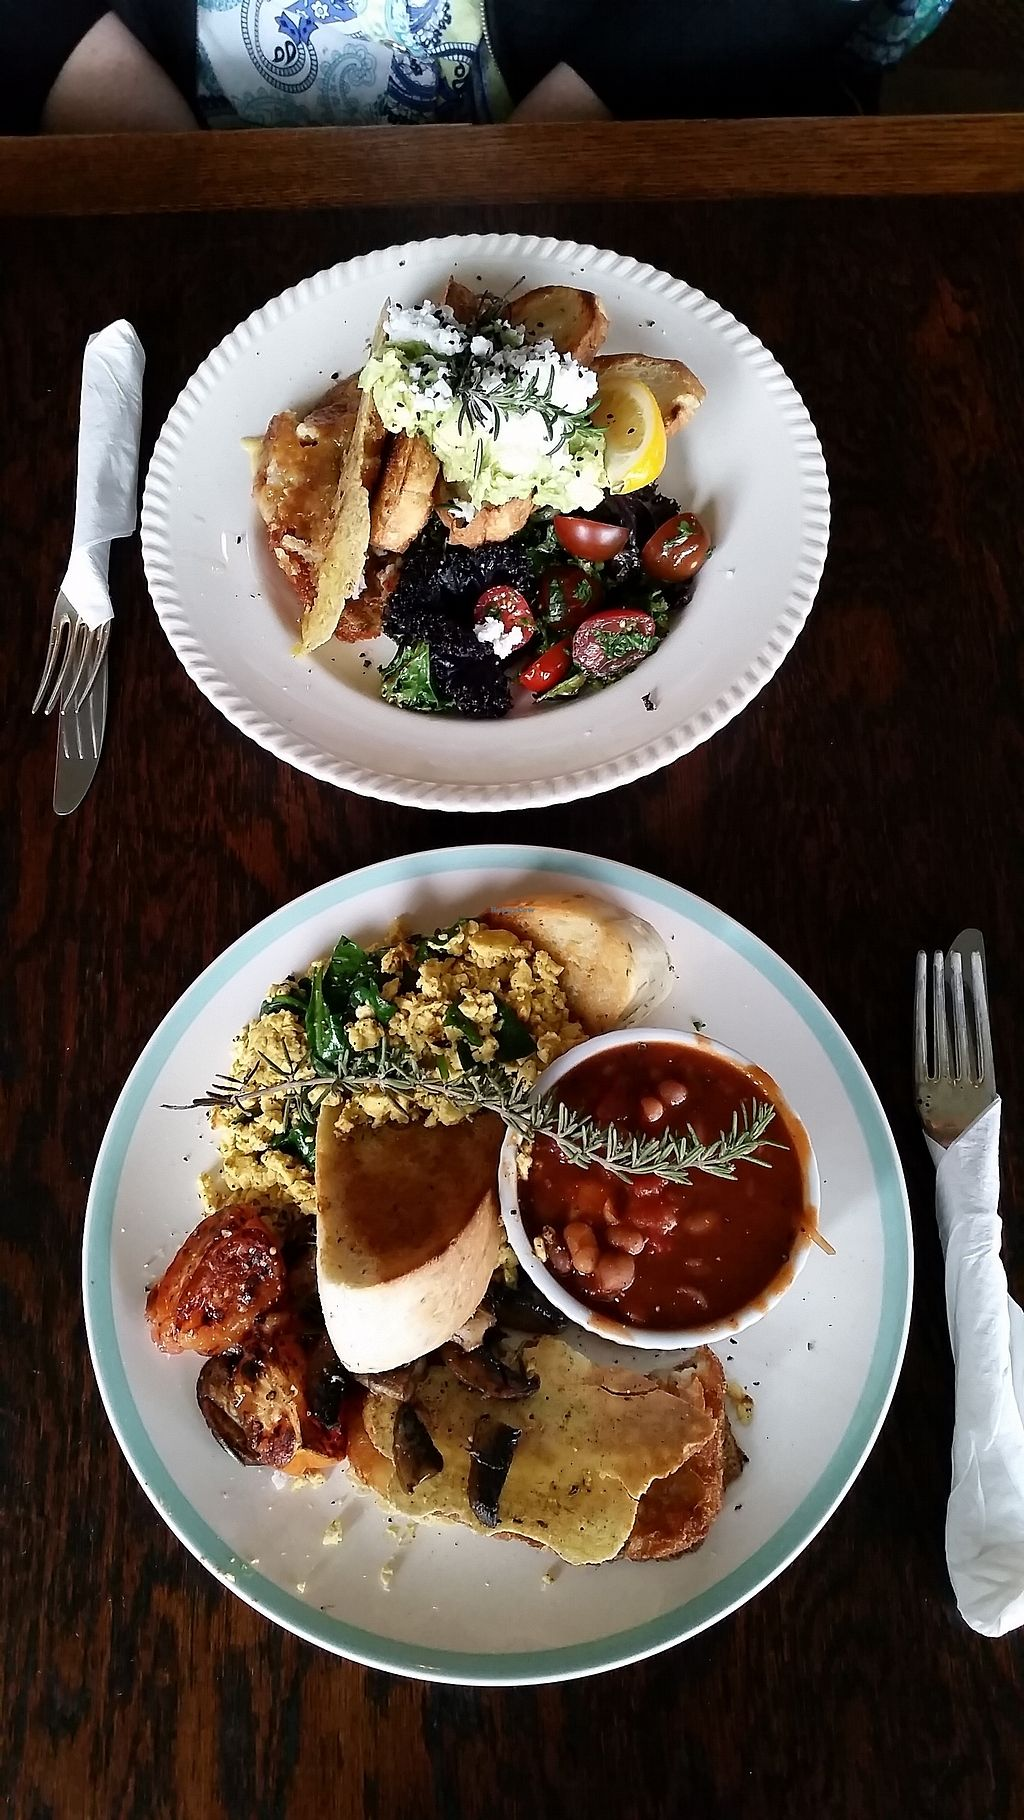 "Photo of Portershed  by <a href=""/members/profile/AndyTheVWDude"">AndyTheVWDude</a> <br/>The Blue-Collar Breakfast & the Hash Avo Mash ~ Fabulous! <br/> September 5, 2017  - <a href='/contact/abuse/image/96516/300986'>Report</a>"